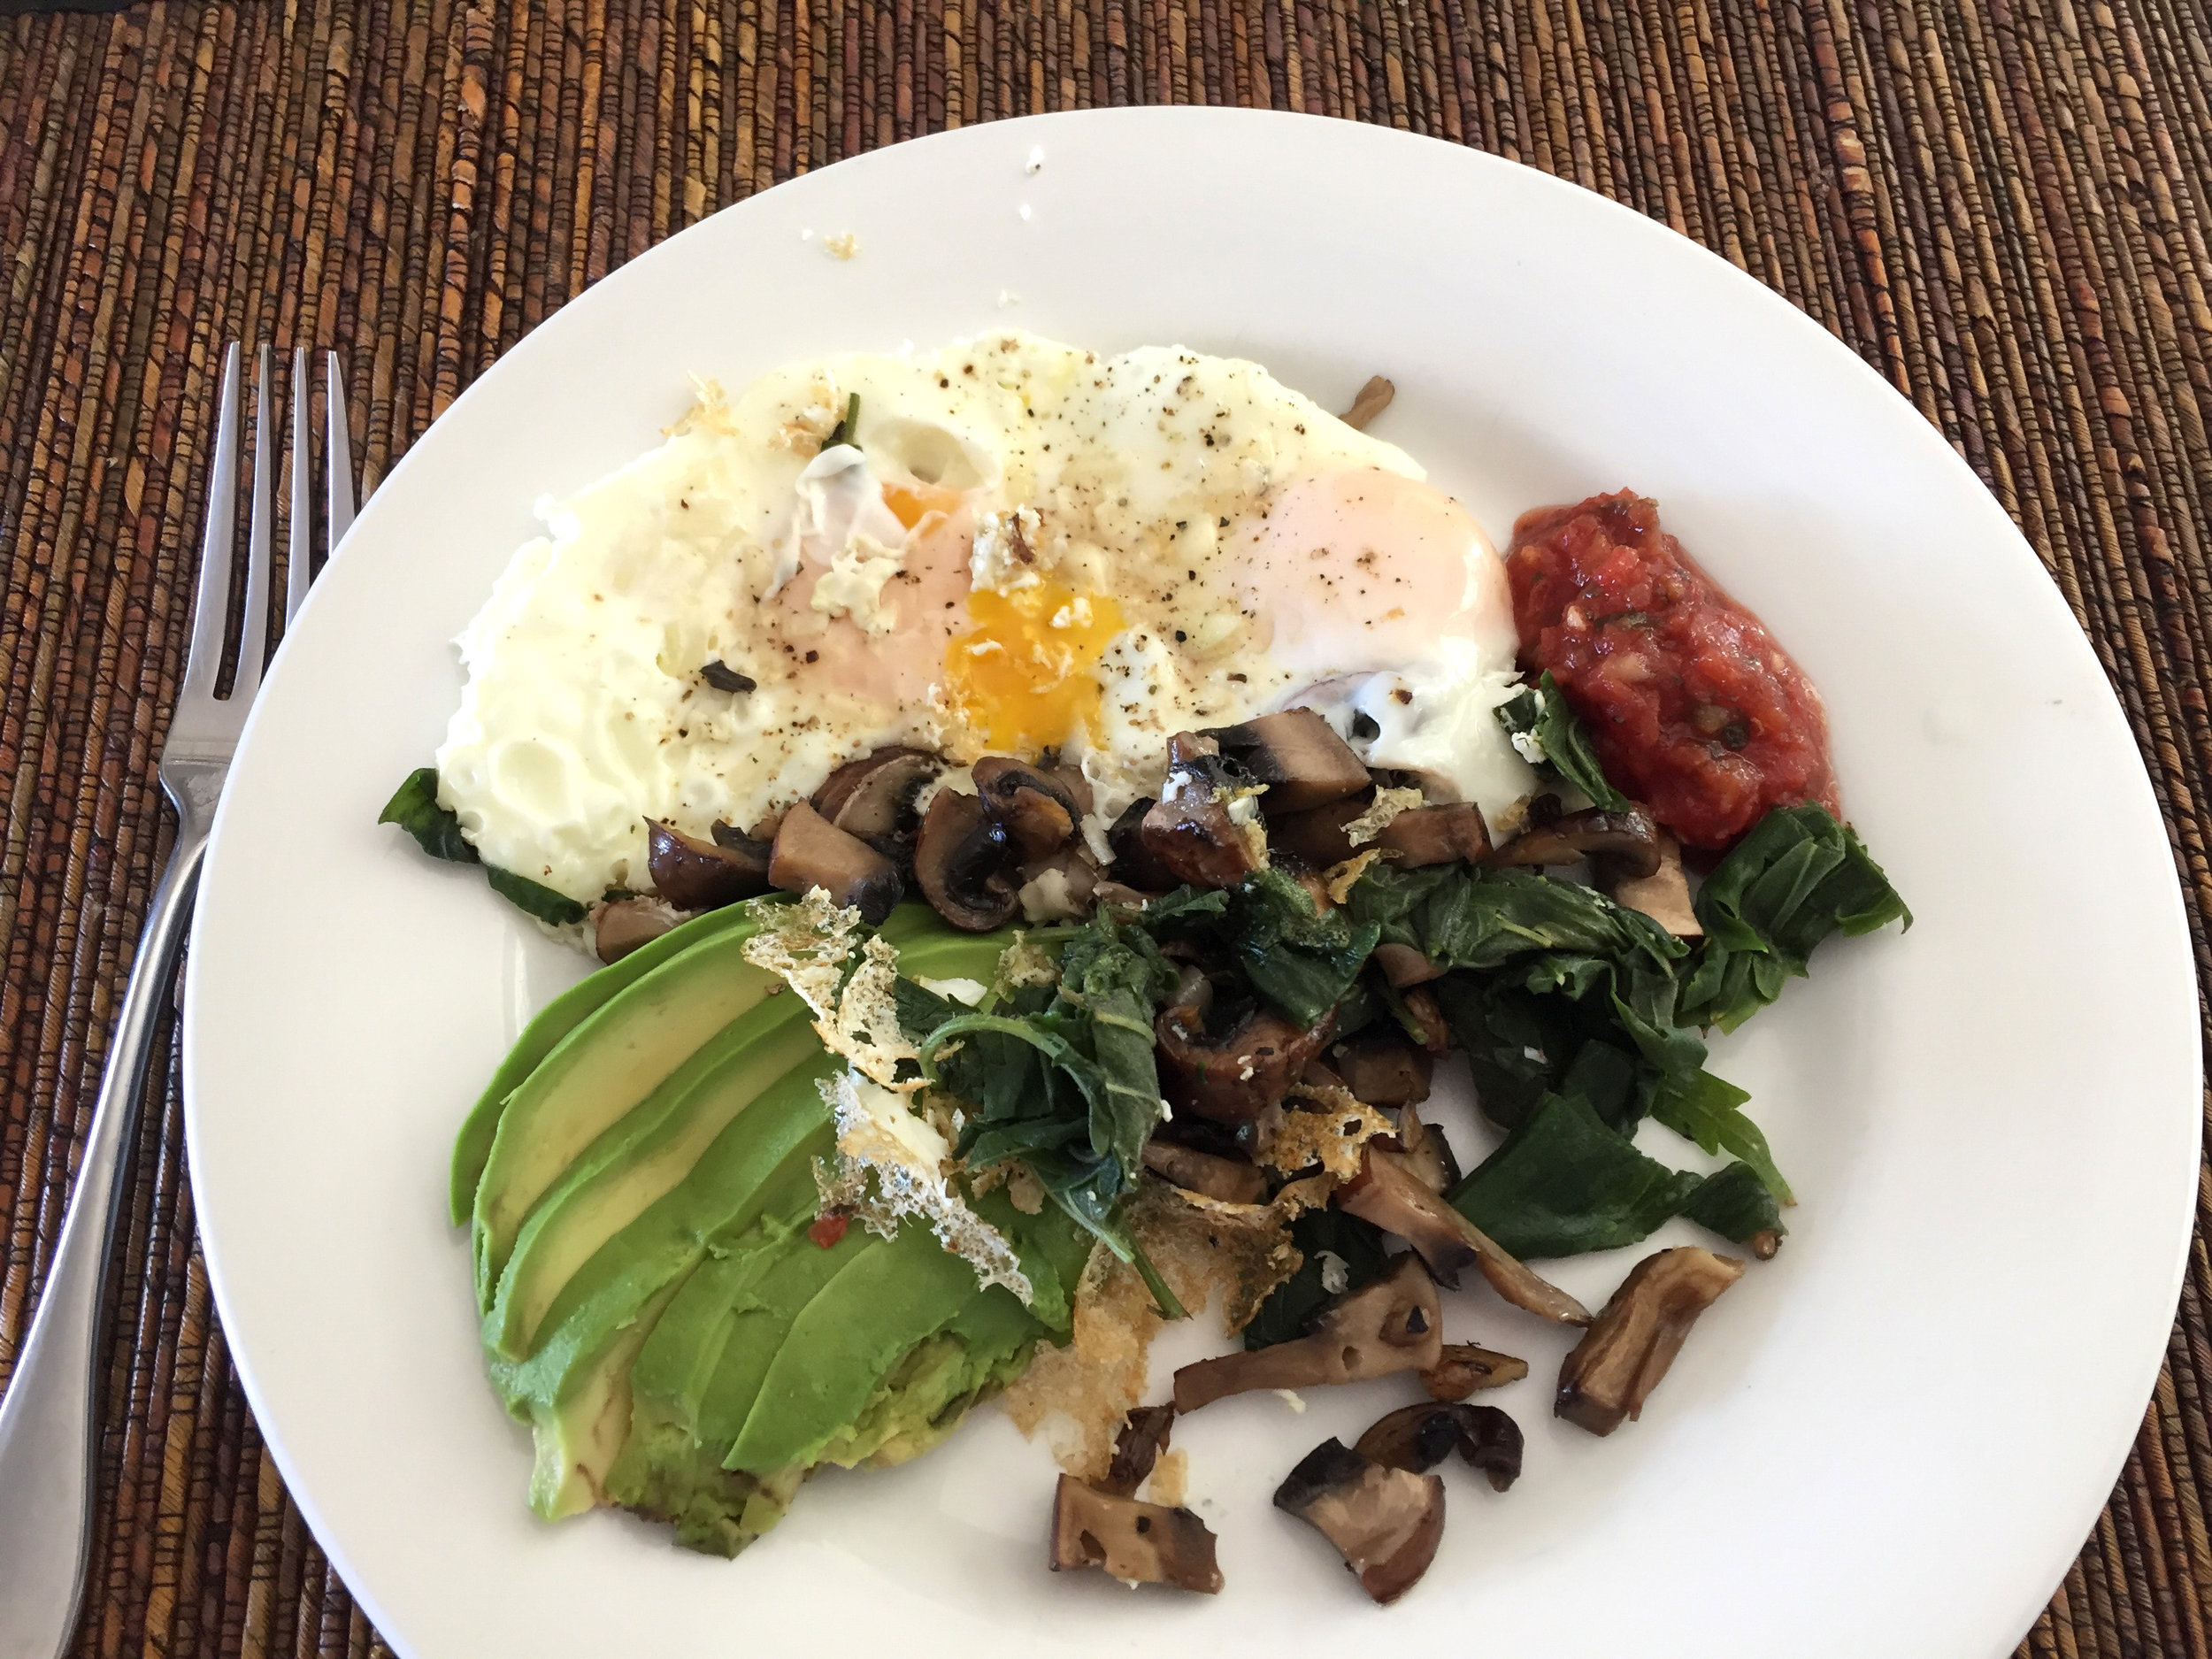 Sautéed stinging nettle with mushroom, egg, avocado and salsa.